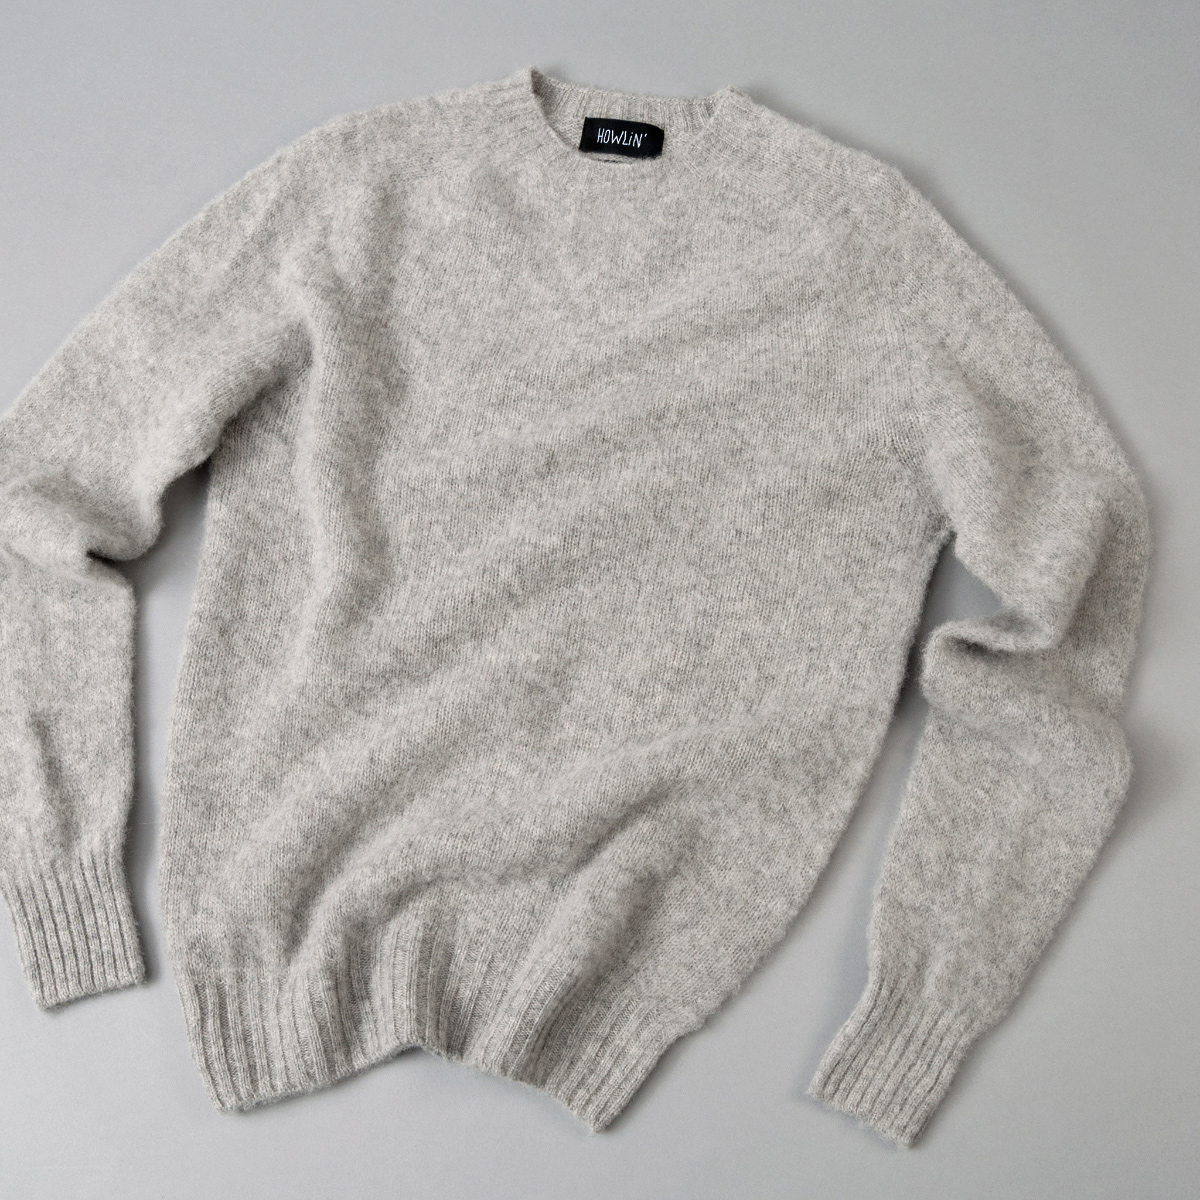 Howlin Birth of the Cool Sweater, Silver